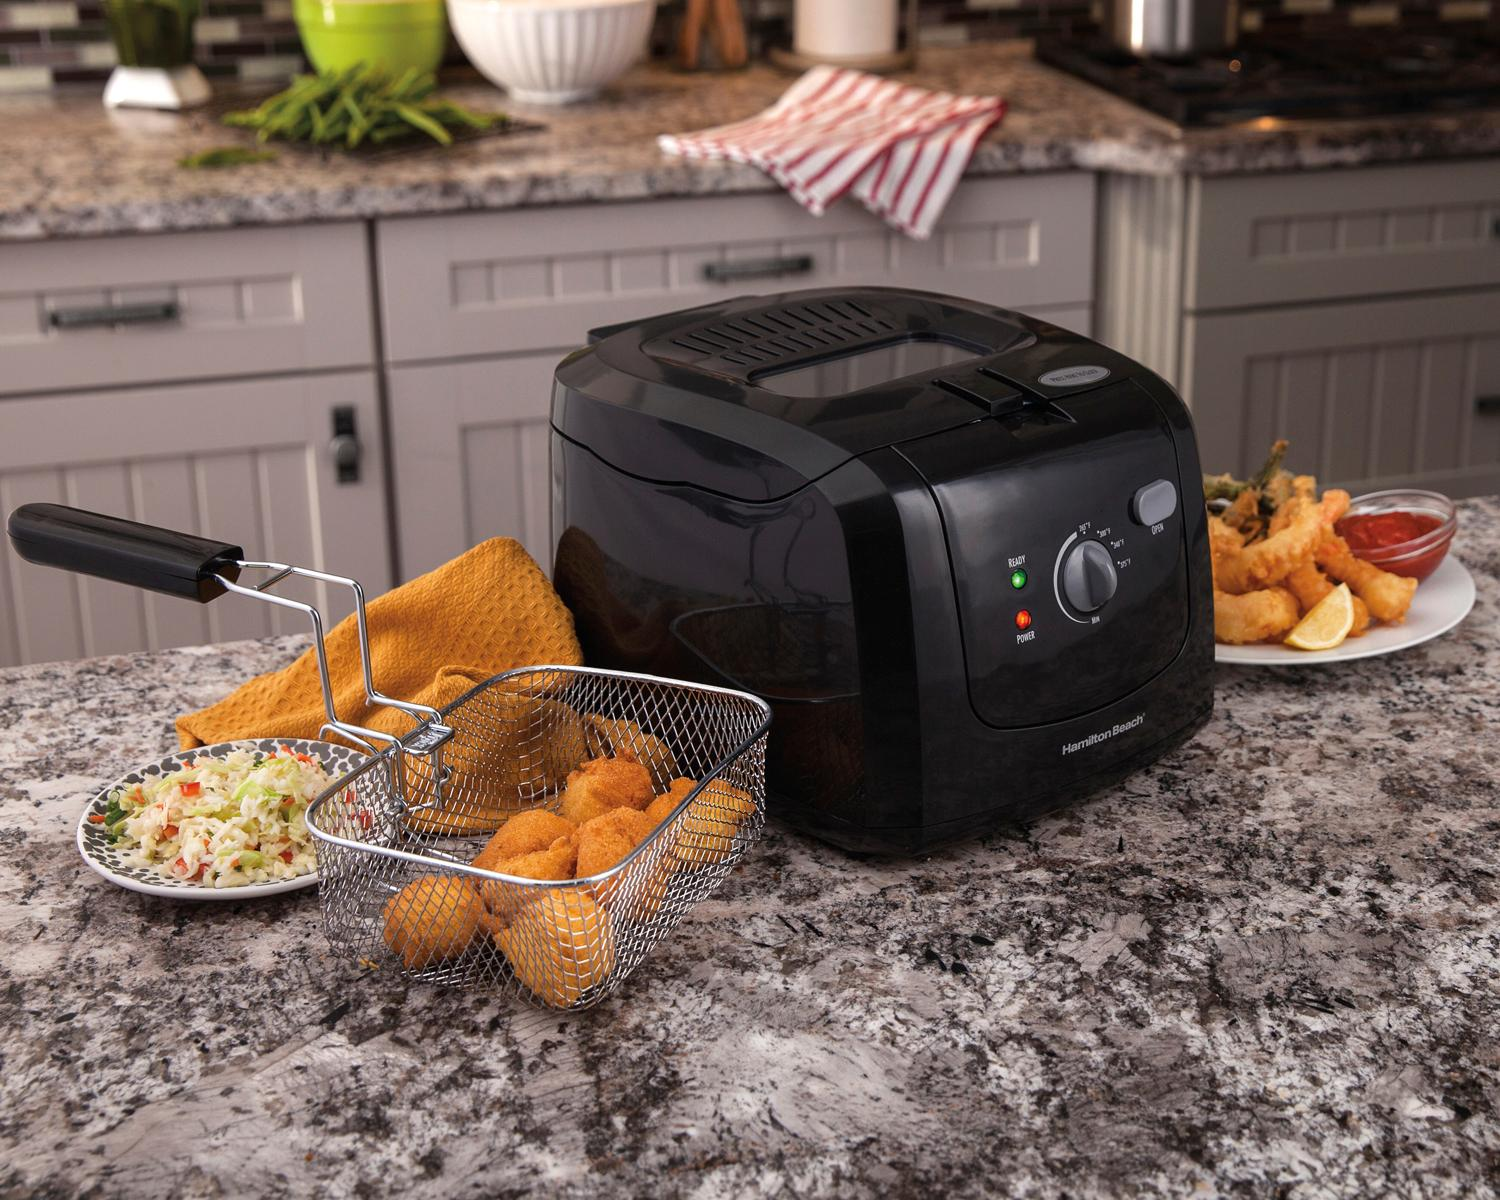 Amazon.com: Hamilton Beach (35021) Deep Fryer, Cool Touch